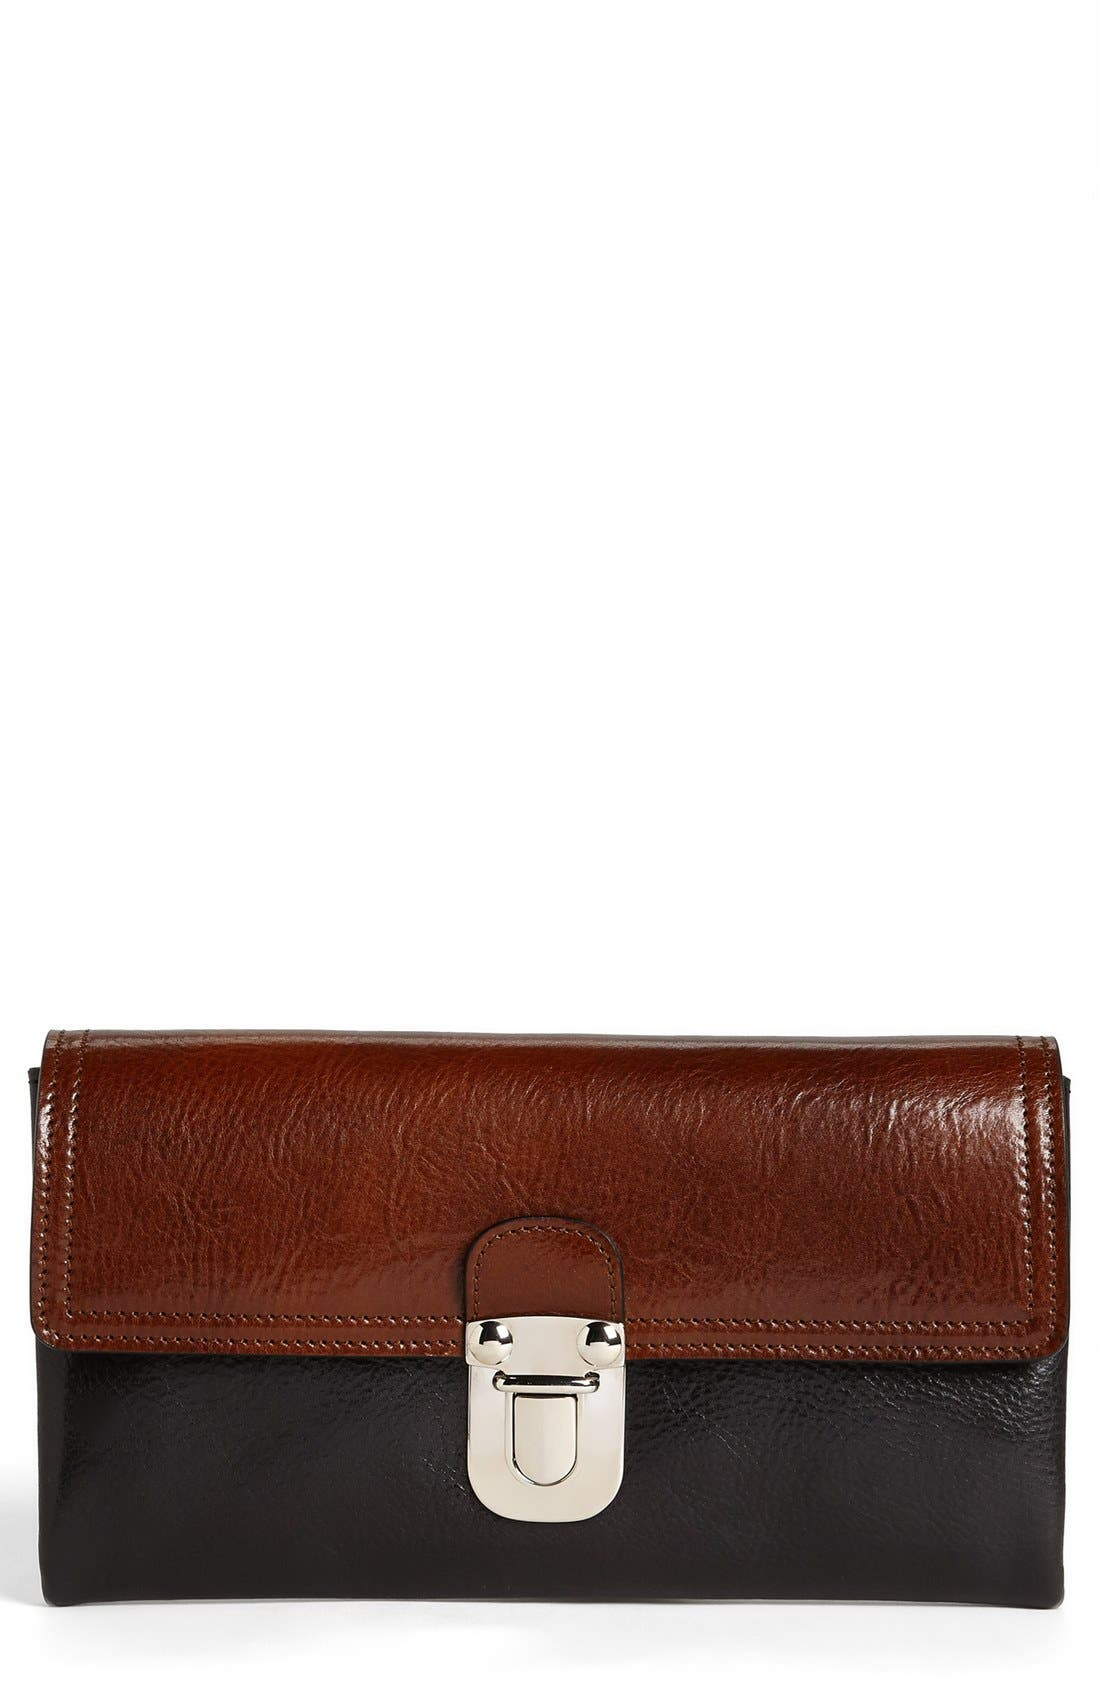 Alternate Image 1 Selected - Marni 'Small Padlock' Clutch